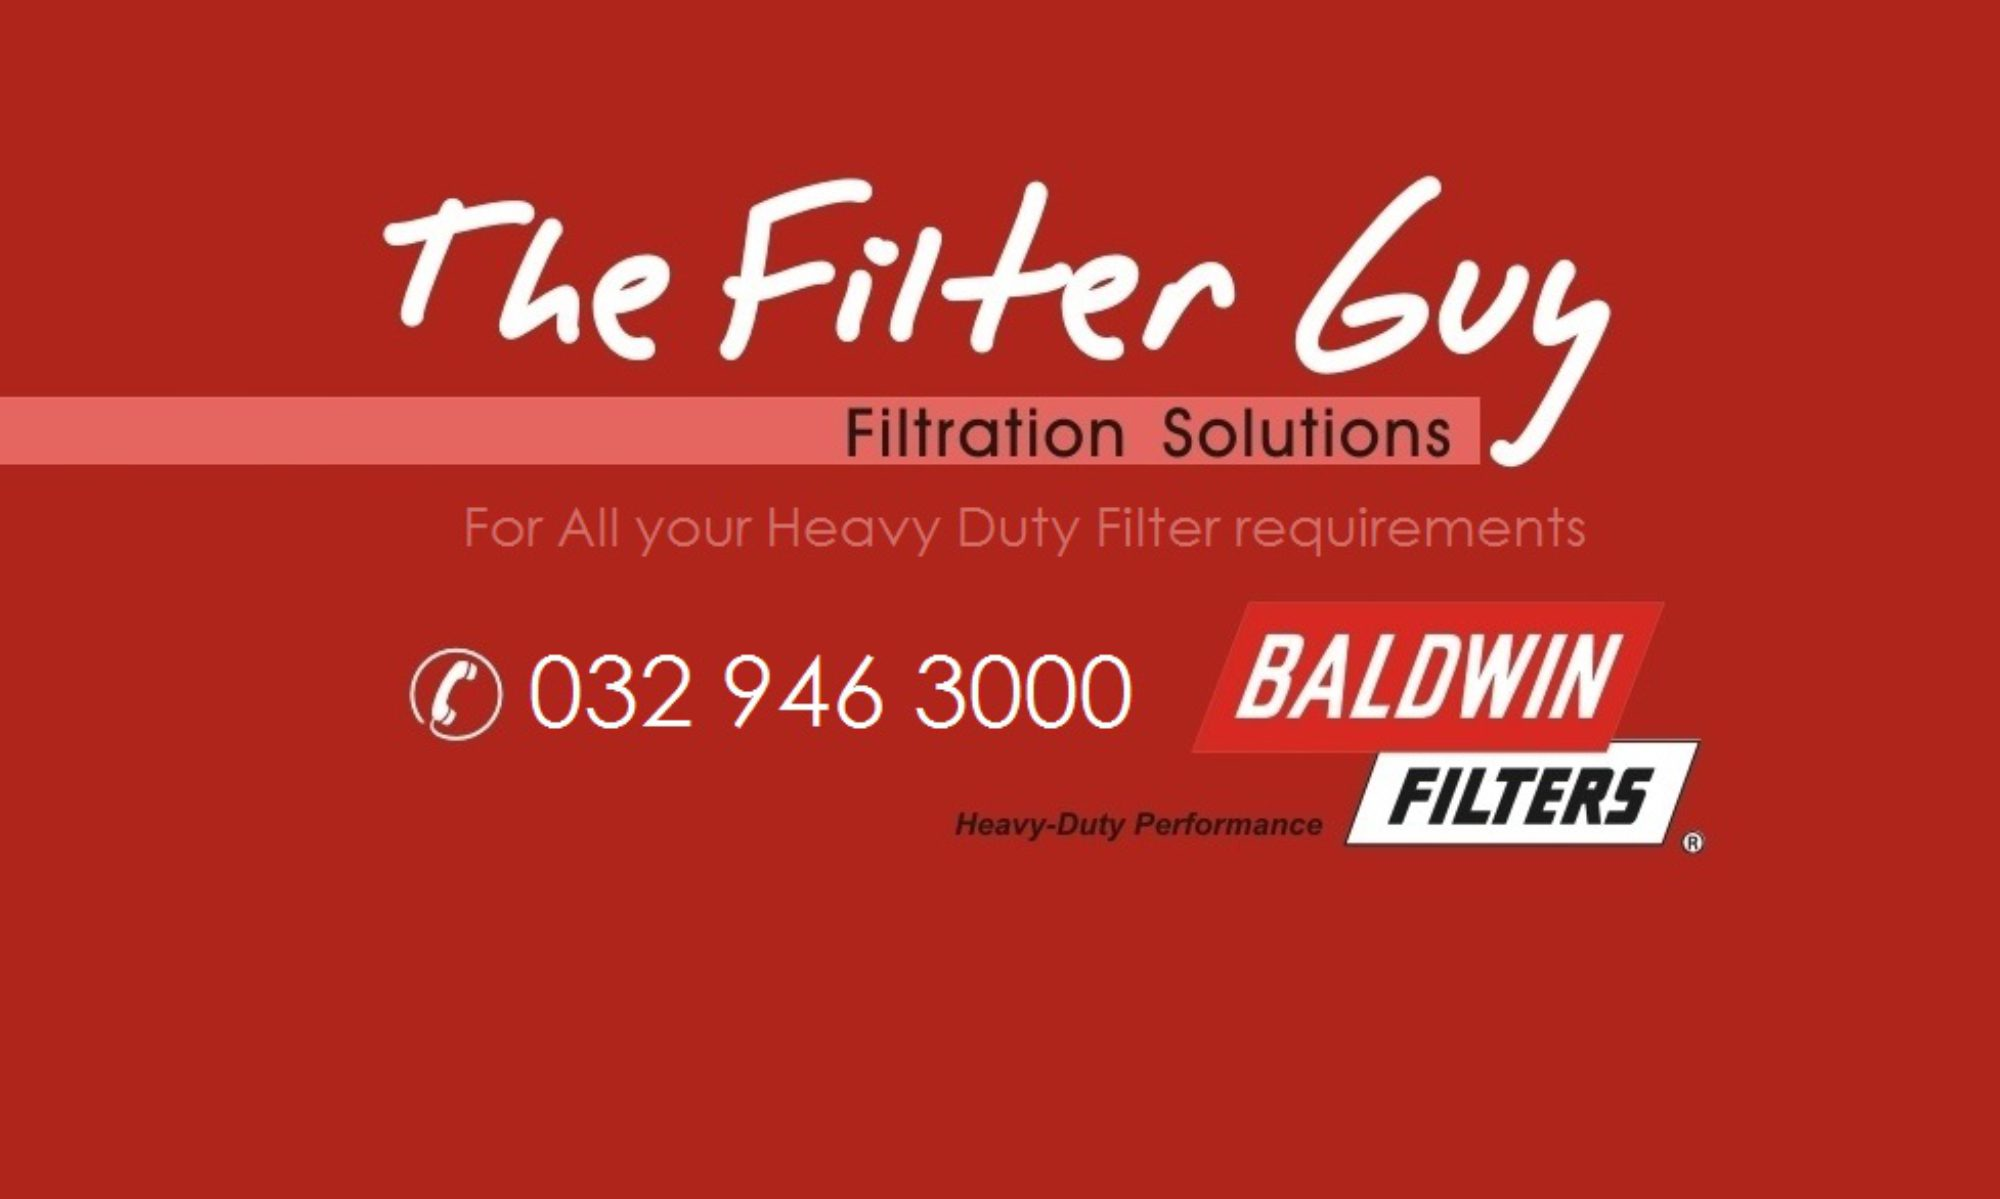 The Filter Guy